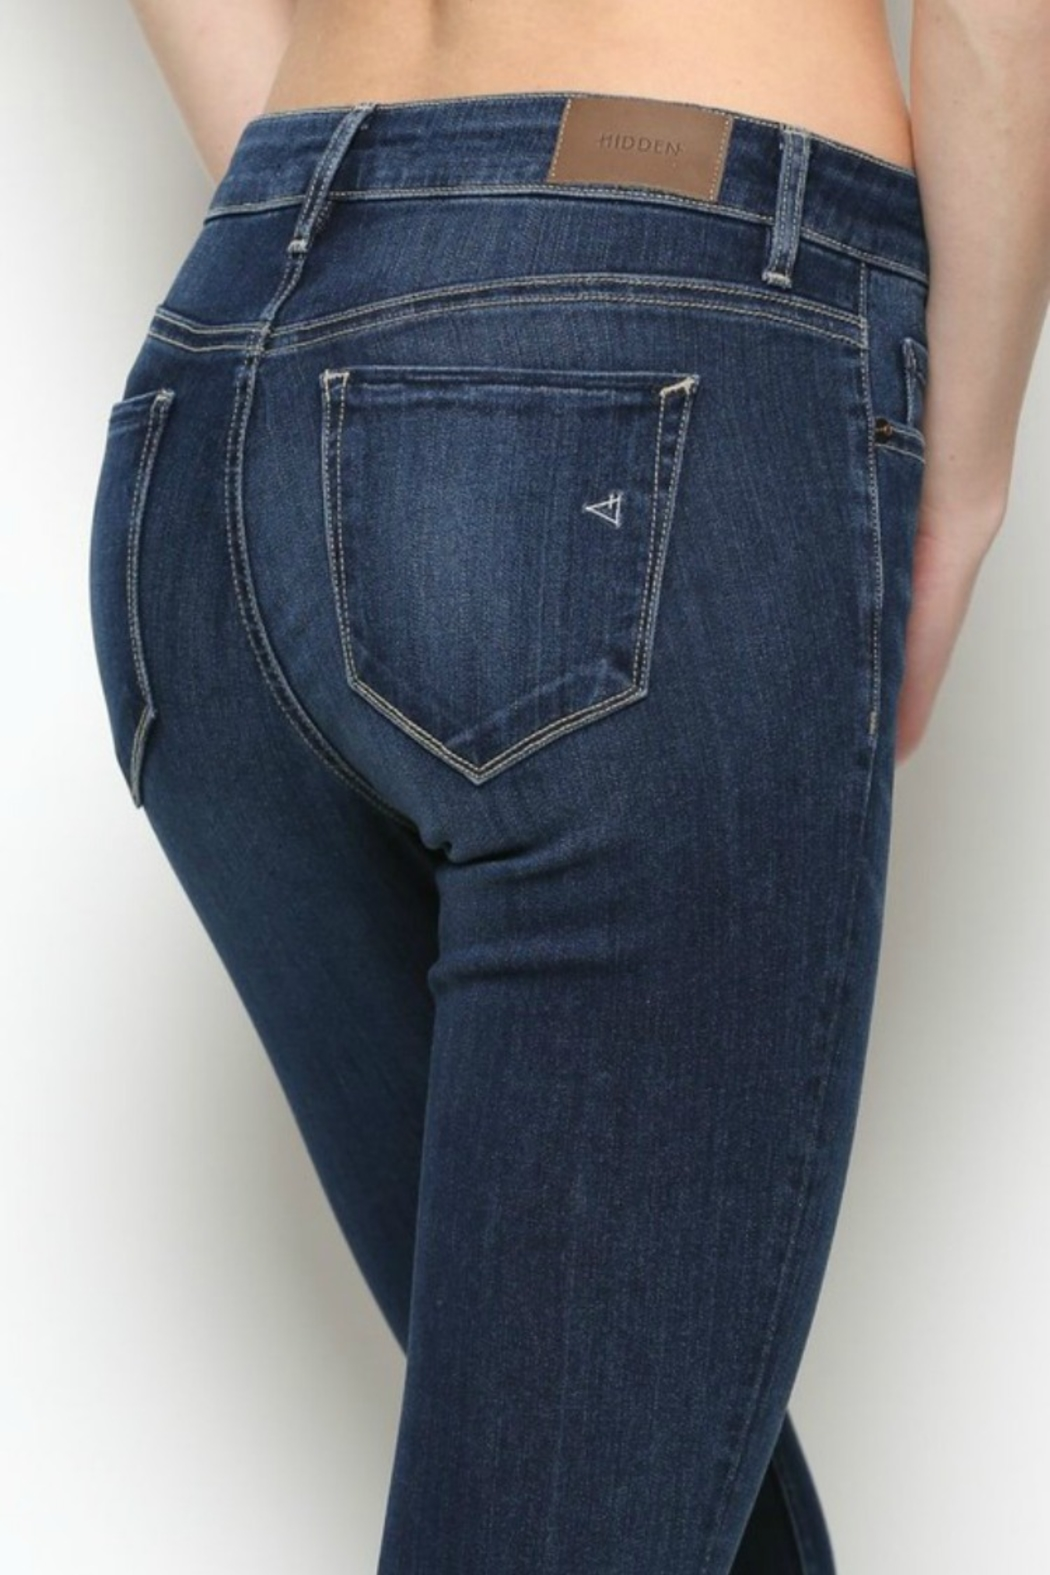 Hidden Jeans HD7452-DK  Dark Wash Released Frayed Hem Skinny - Front Full Image